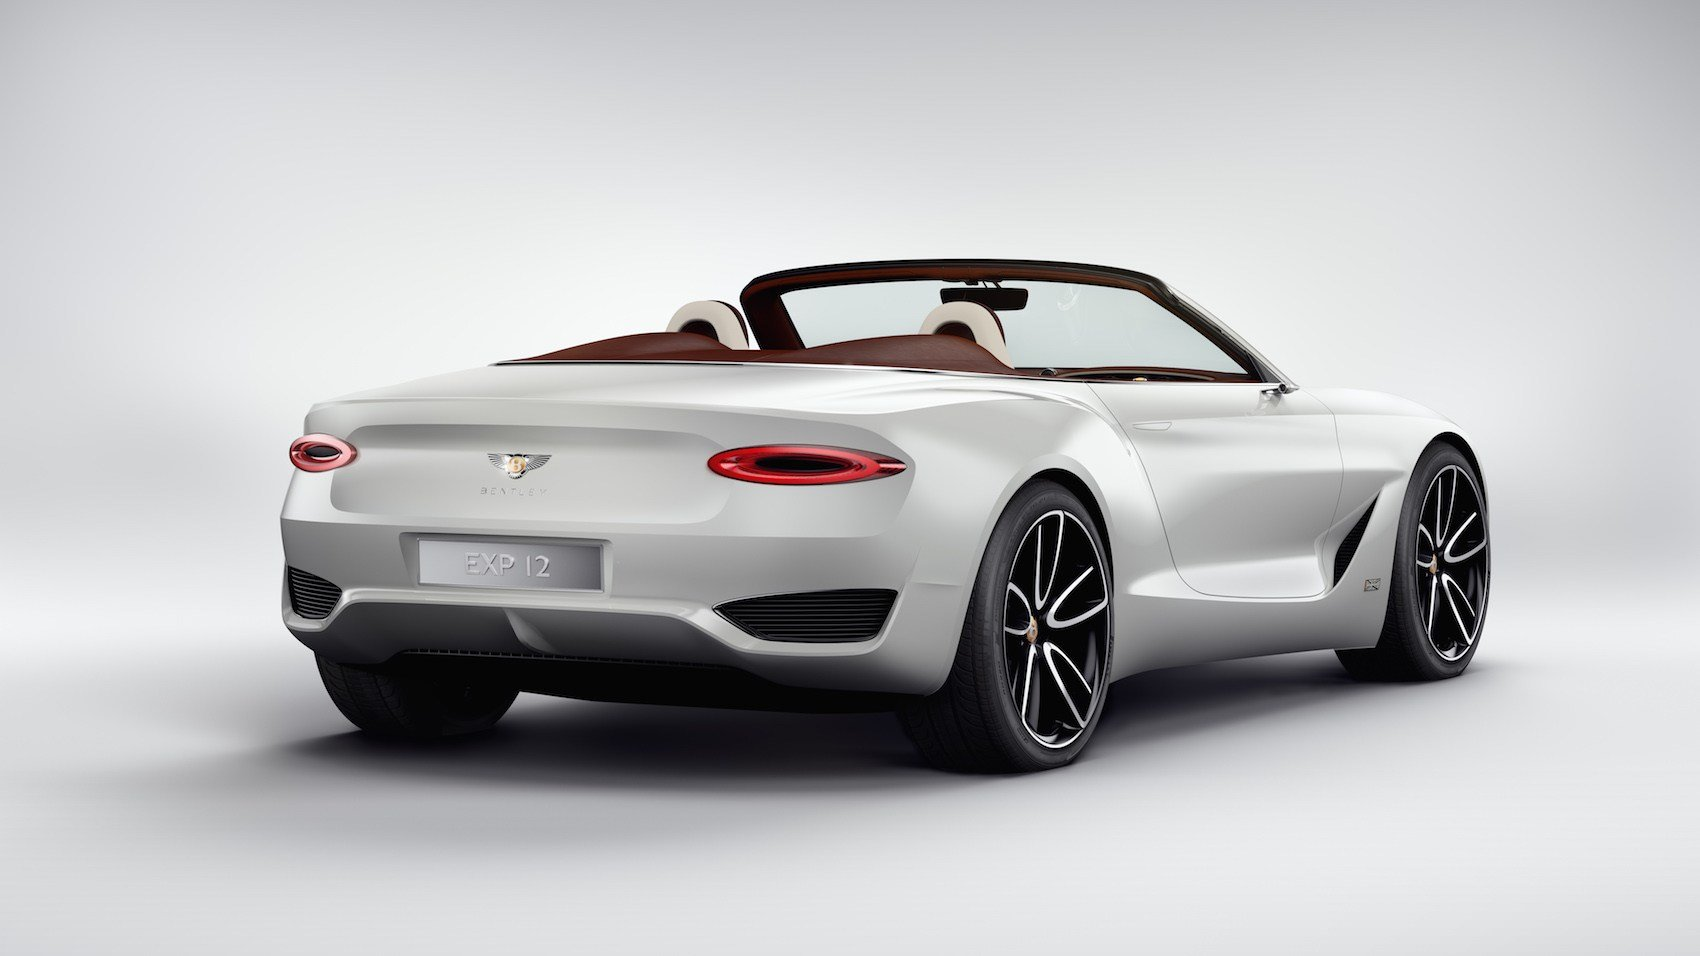 Latest Bentley Continental Gt The New 2018 Model Car Uk Free Download